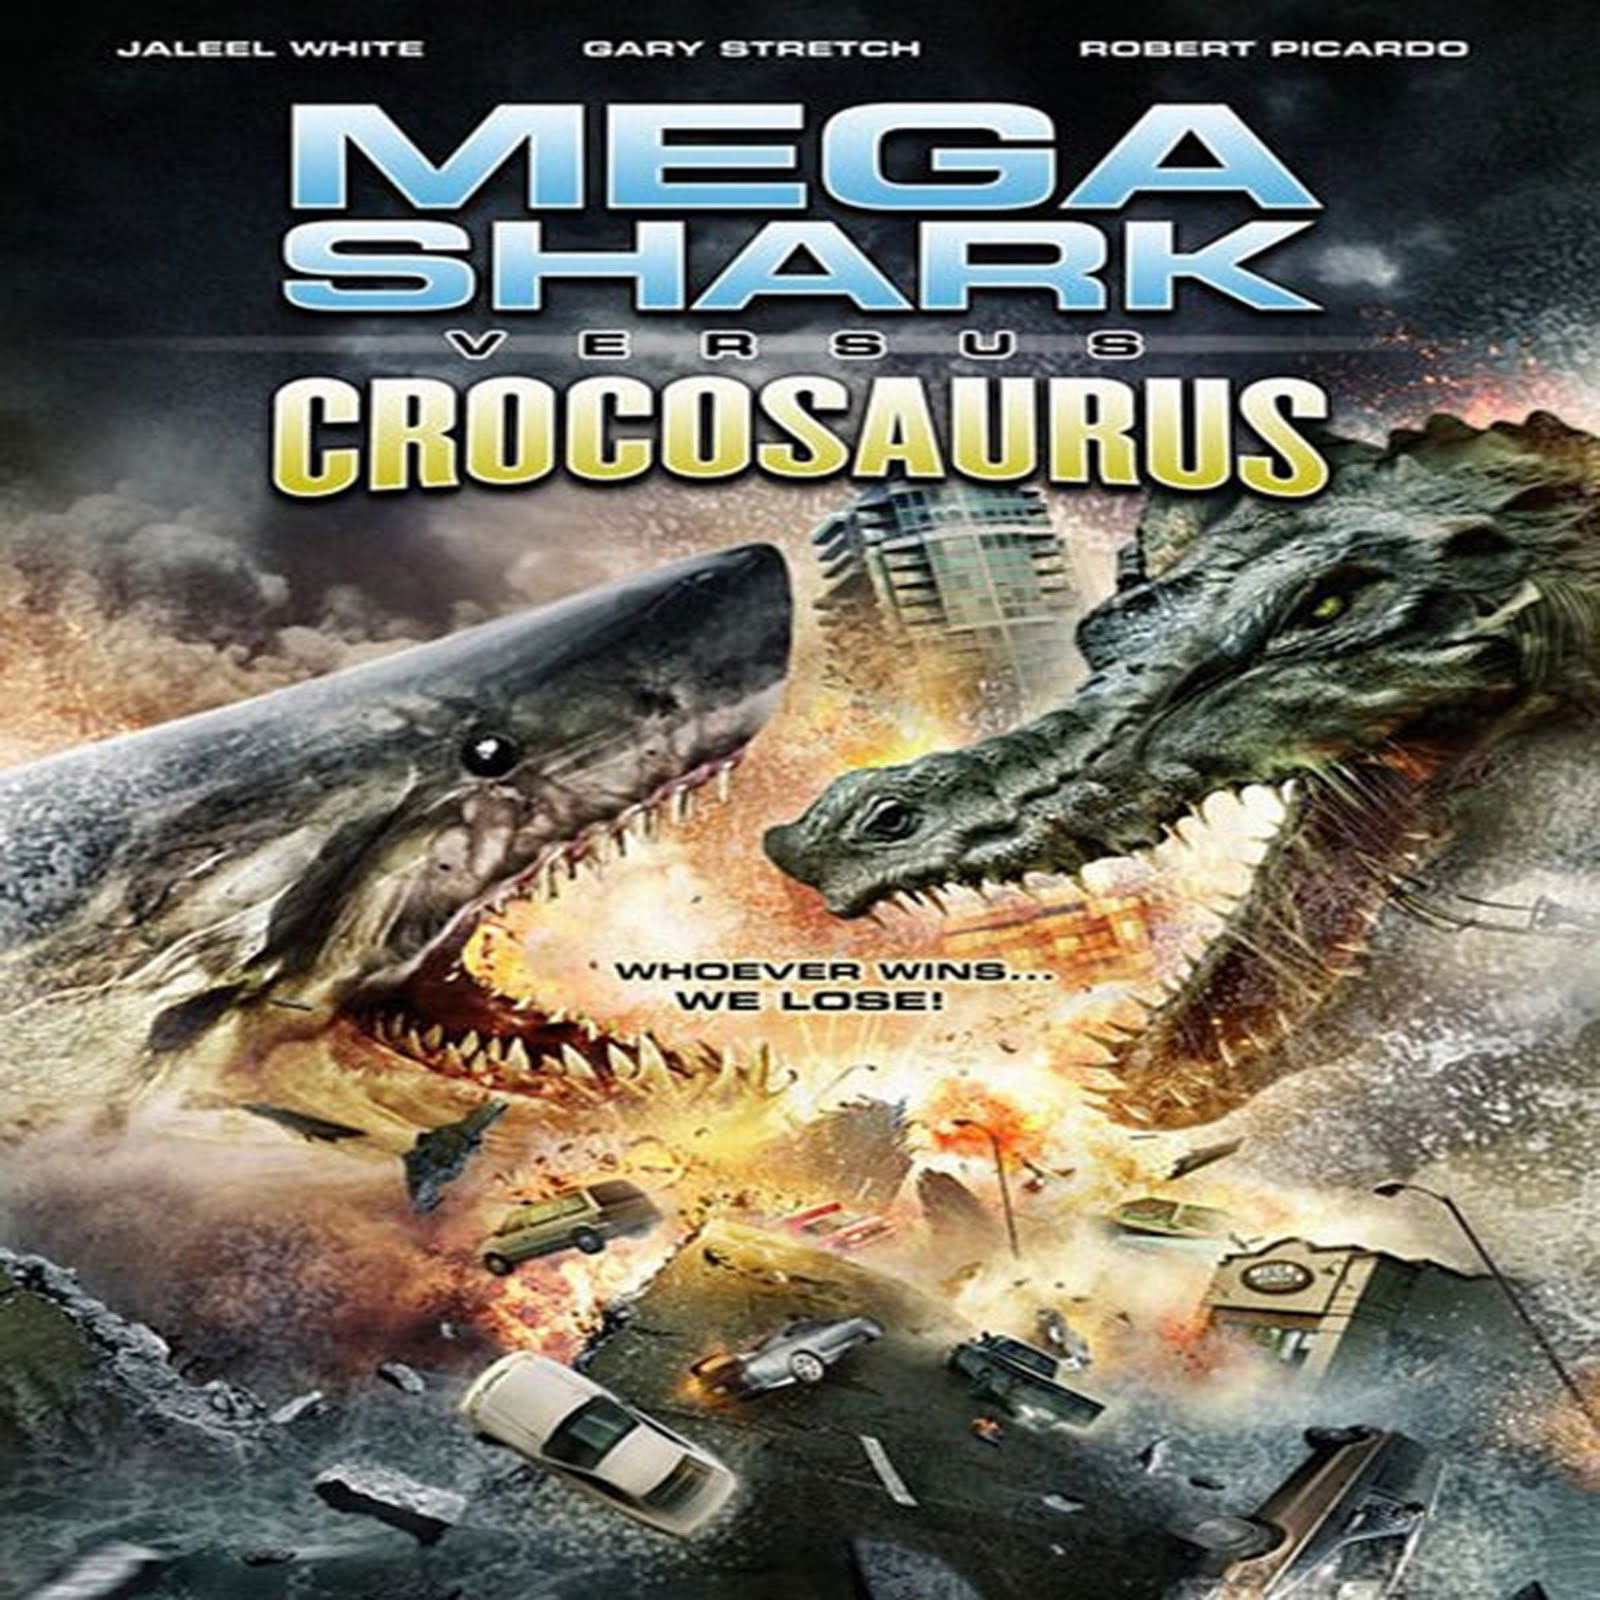 Review: Mega Shark vs Crocosaurus | I Am Your Target Demographic